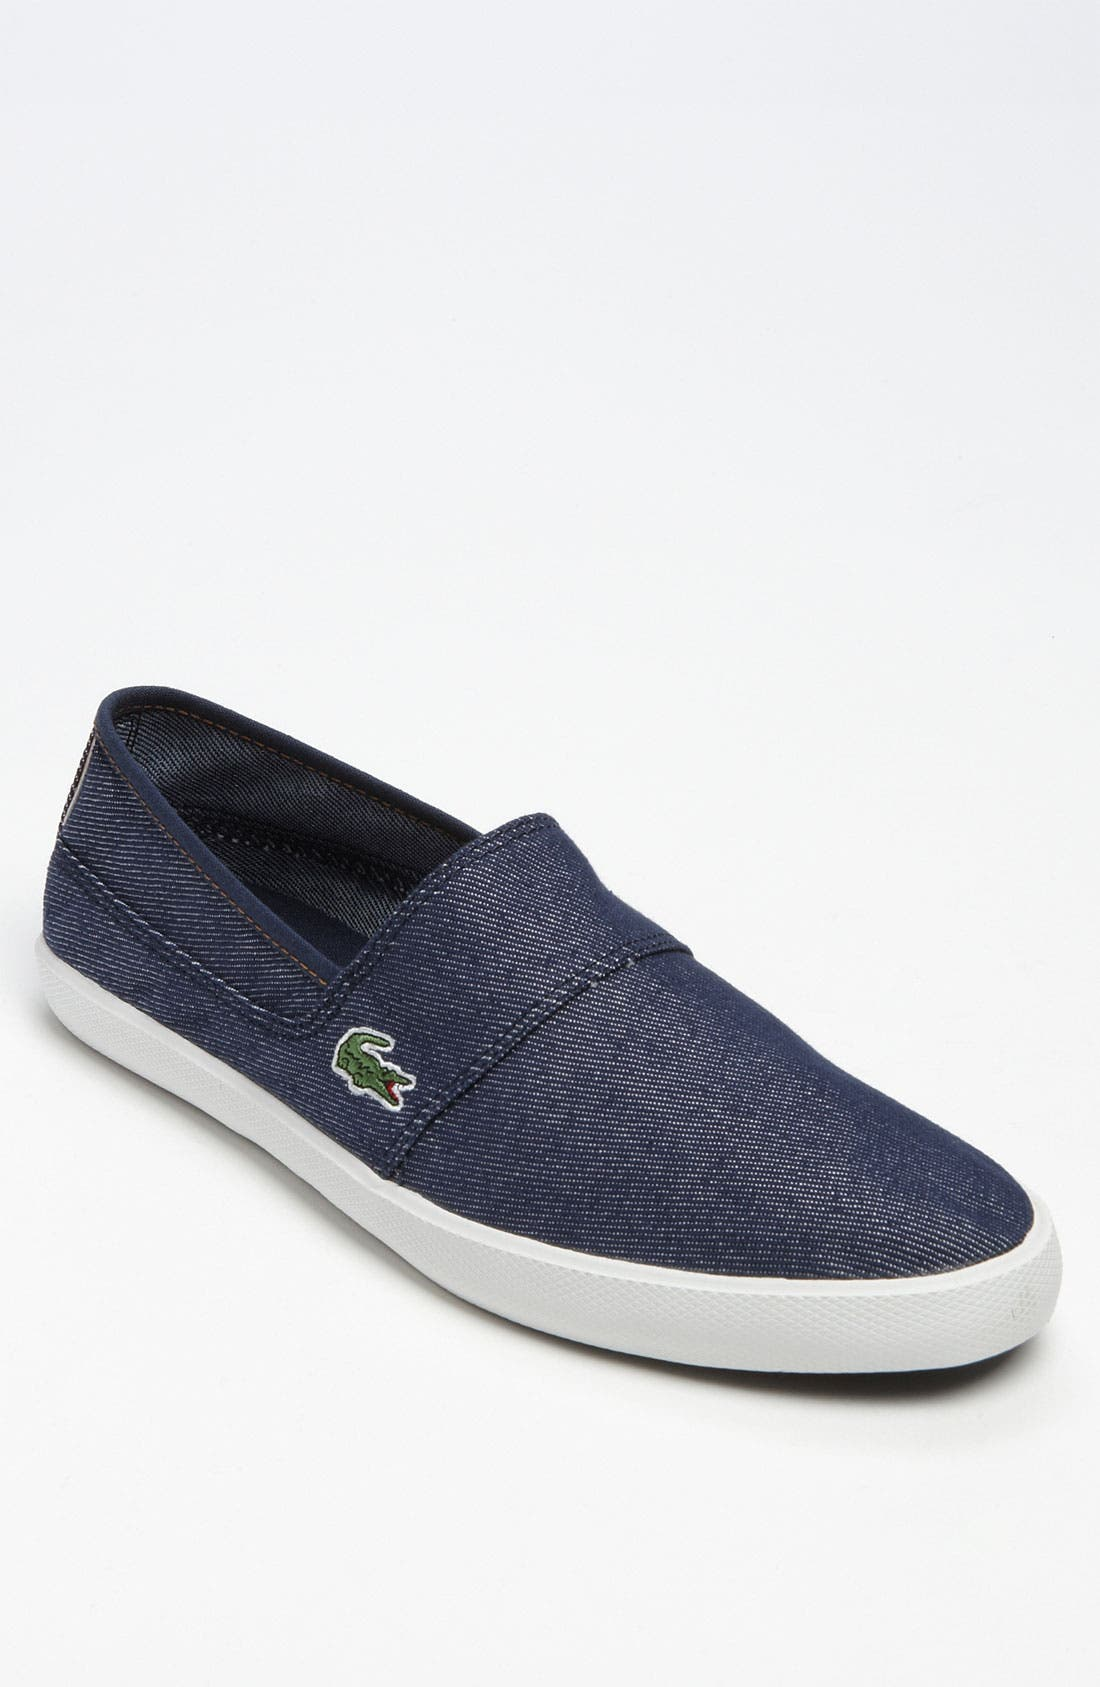 Main Image - Lacoste 'Clemente' Slip-On